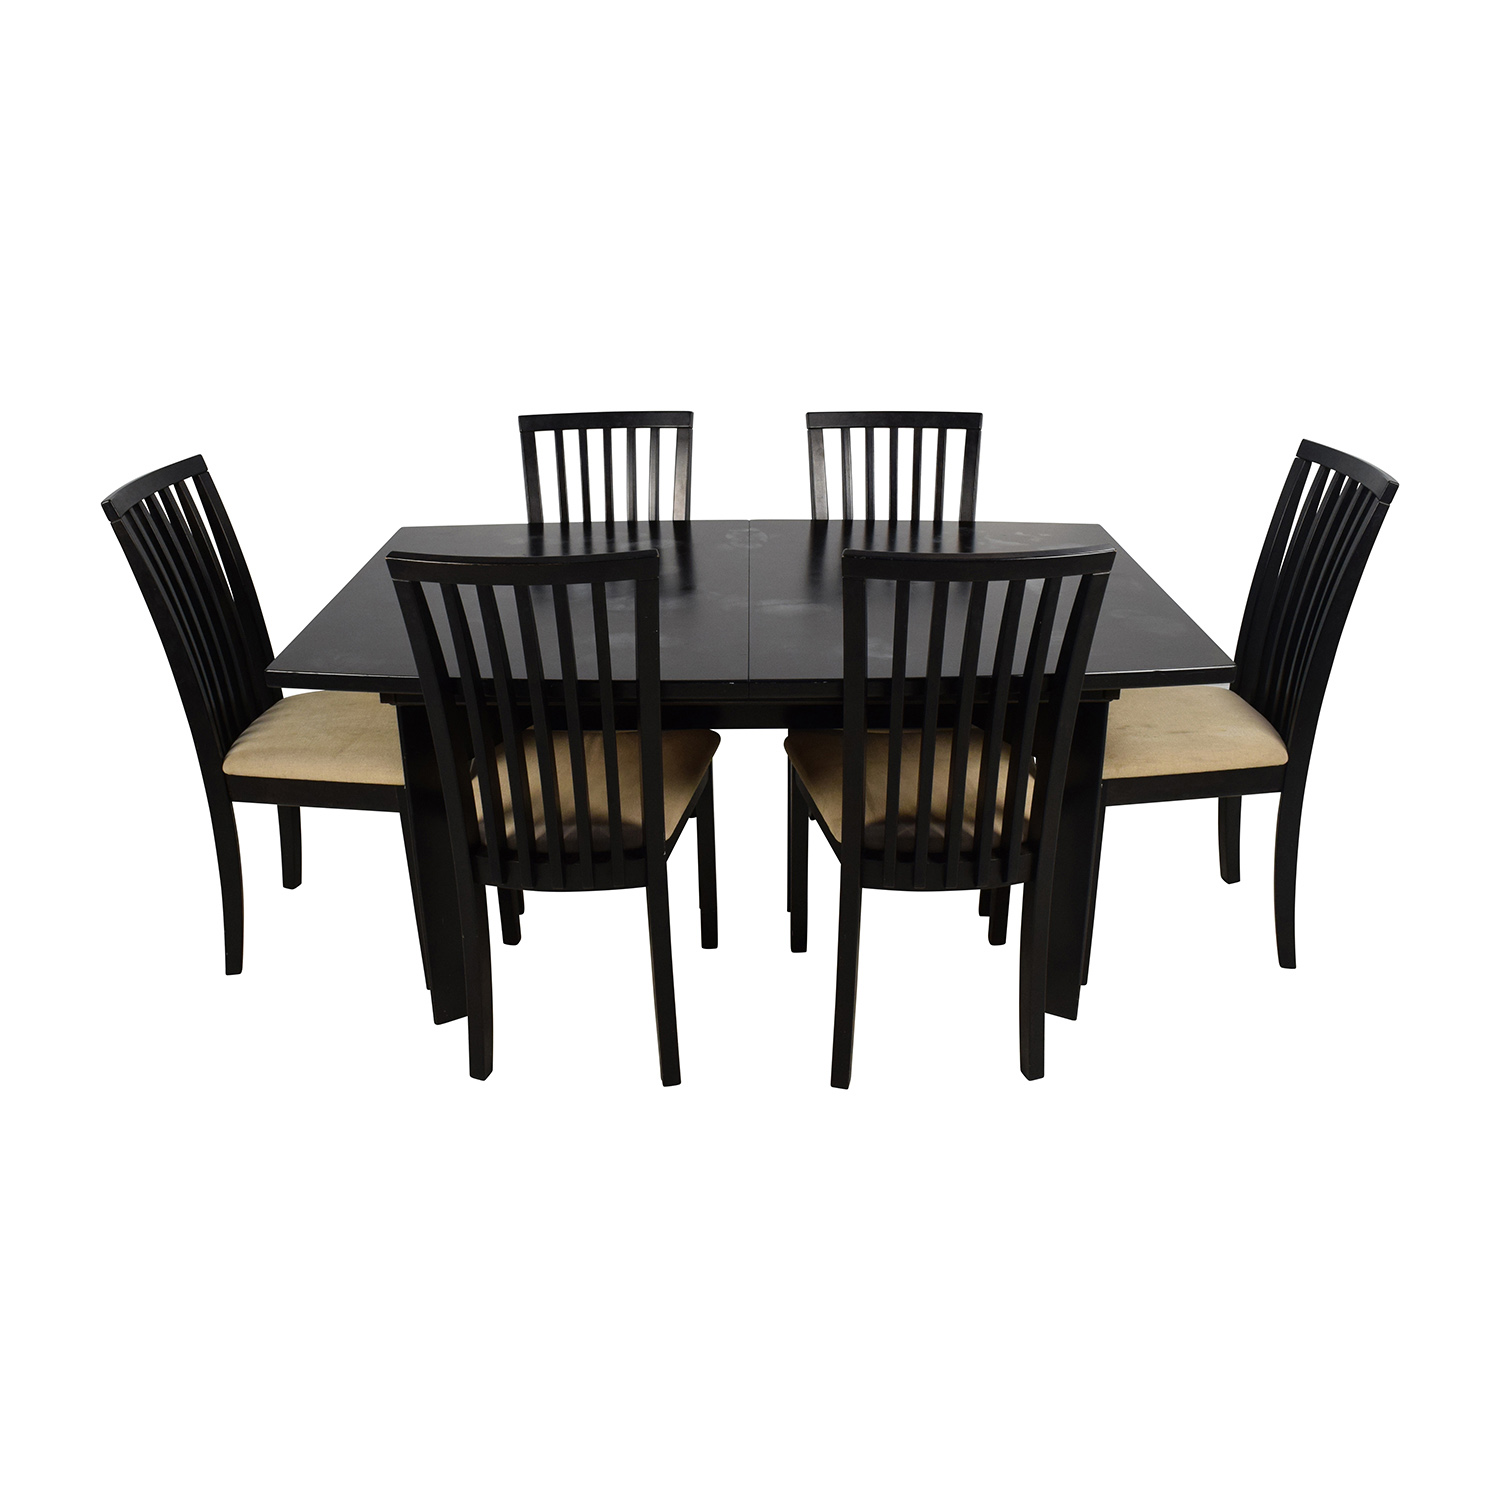 90 off skovby skovby sm 24 dining table with butterfly extensions and six chairs tables. Black Bedroom Furniture Sets. Home Design Ideas